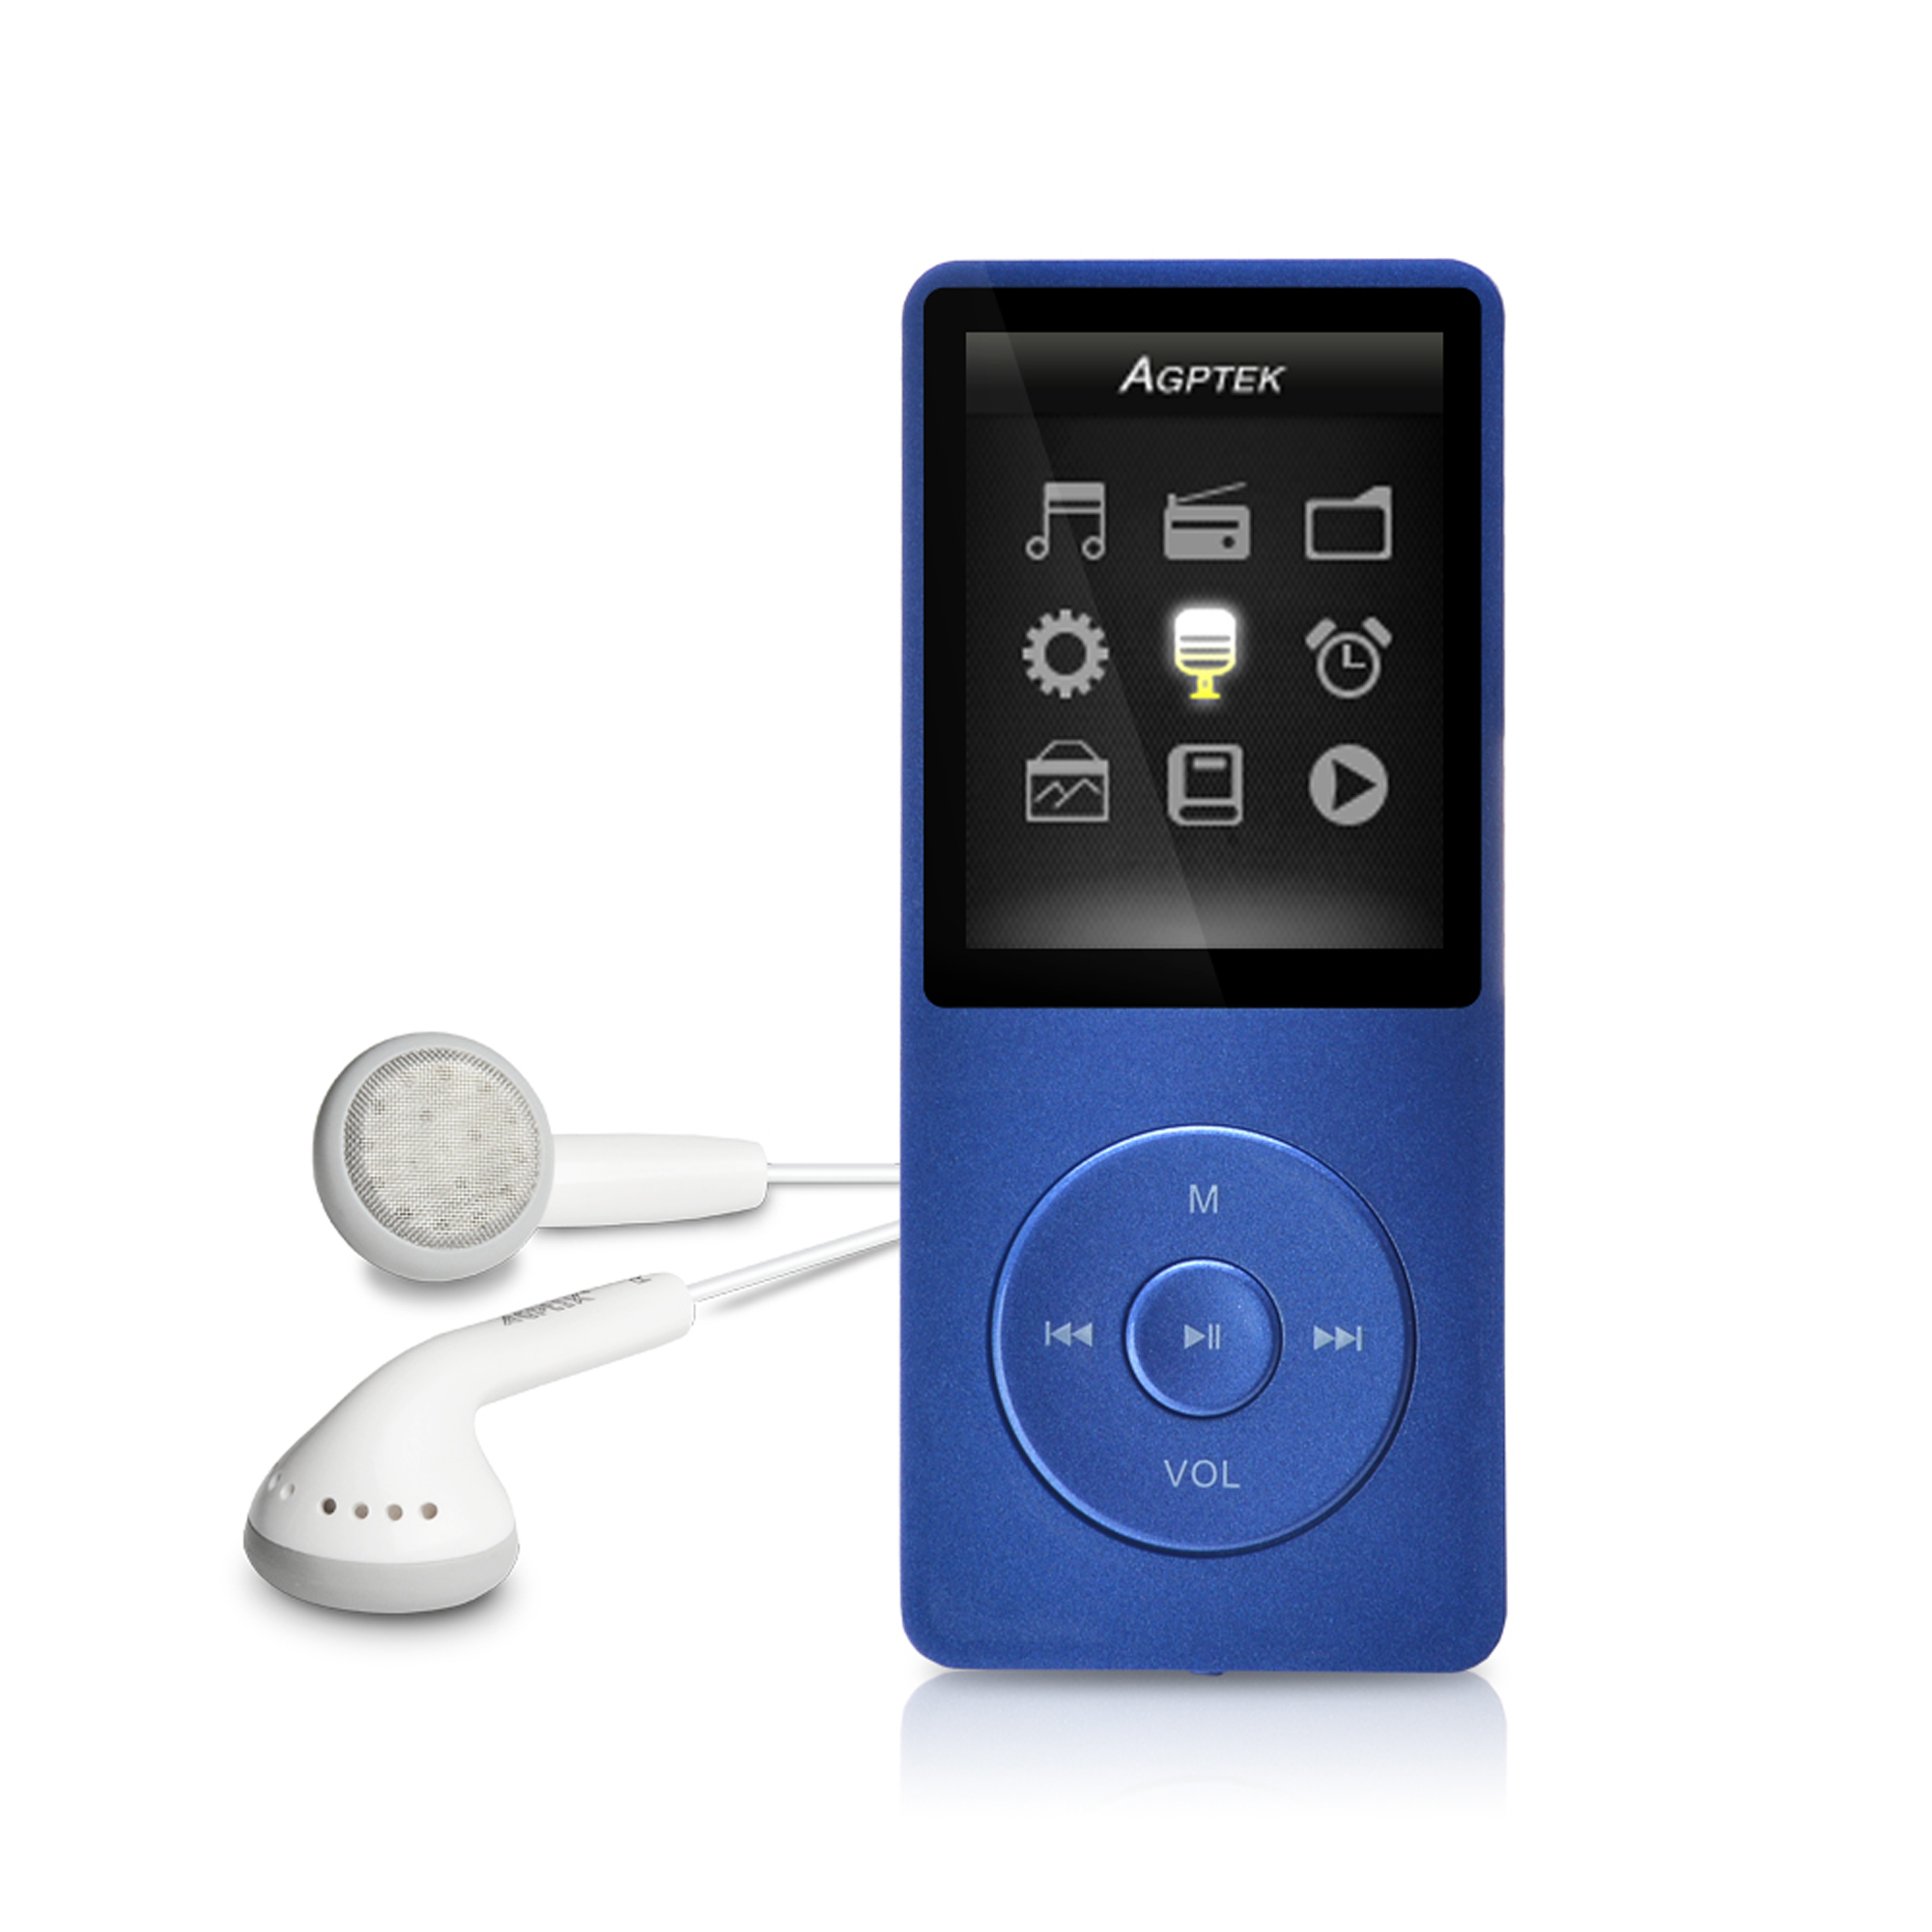 The best MP3 players of 2019 cram tons of music into a small package